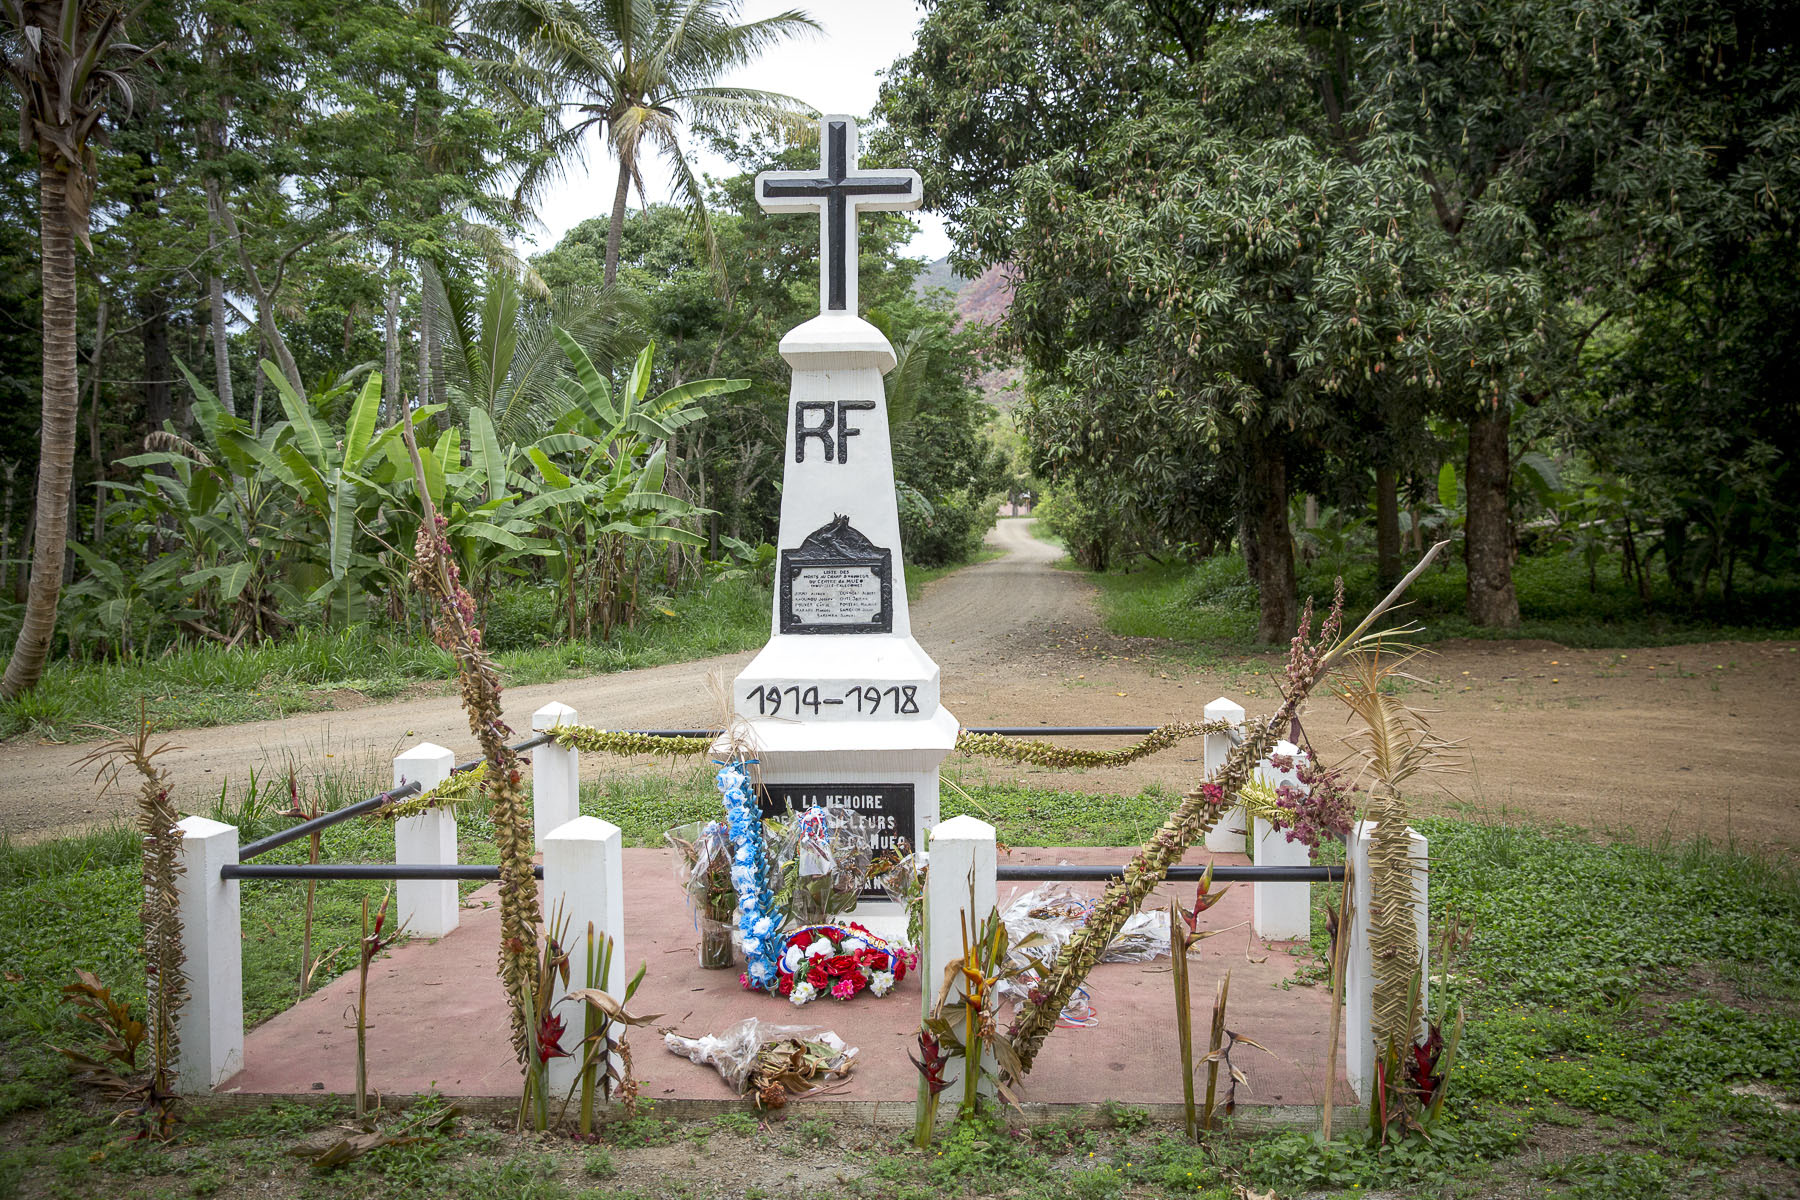 The monument to the war dead of 1914-1918 on tribal lands in Poya, November 2017